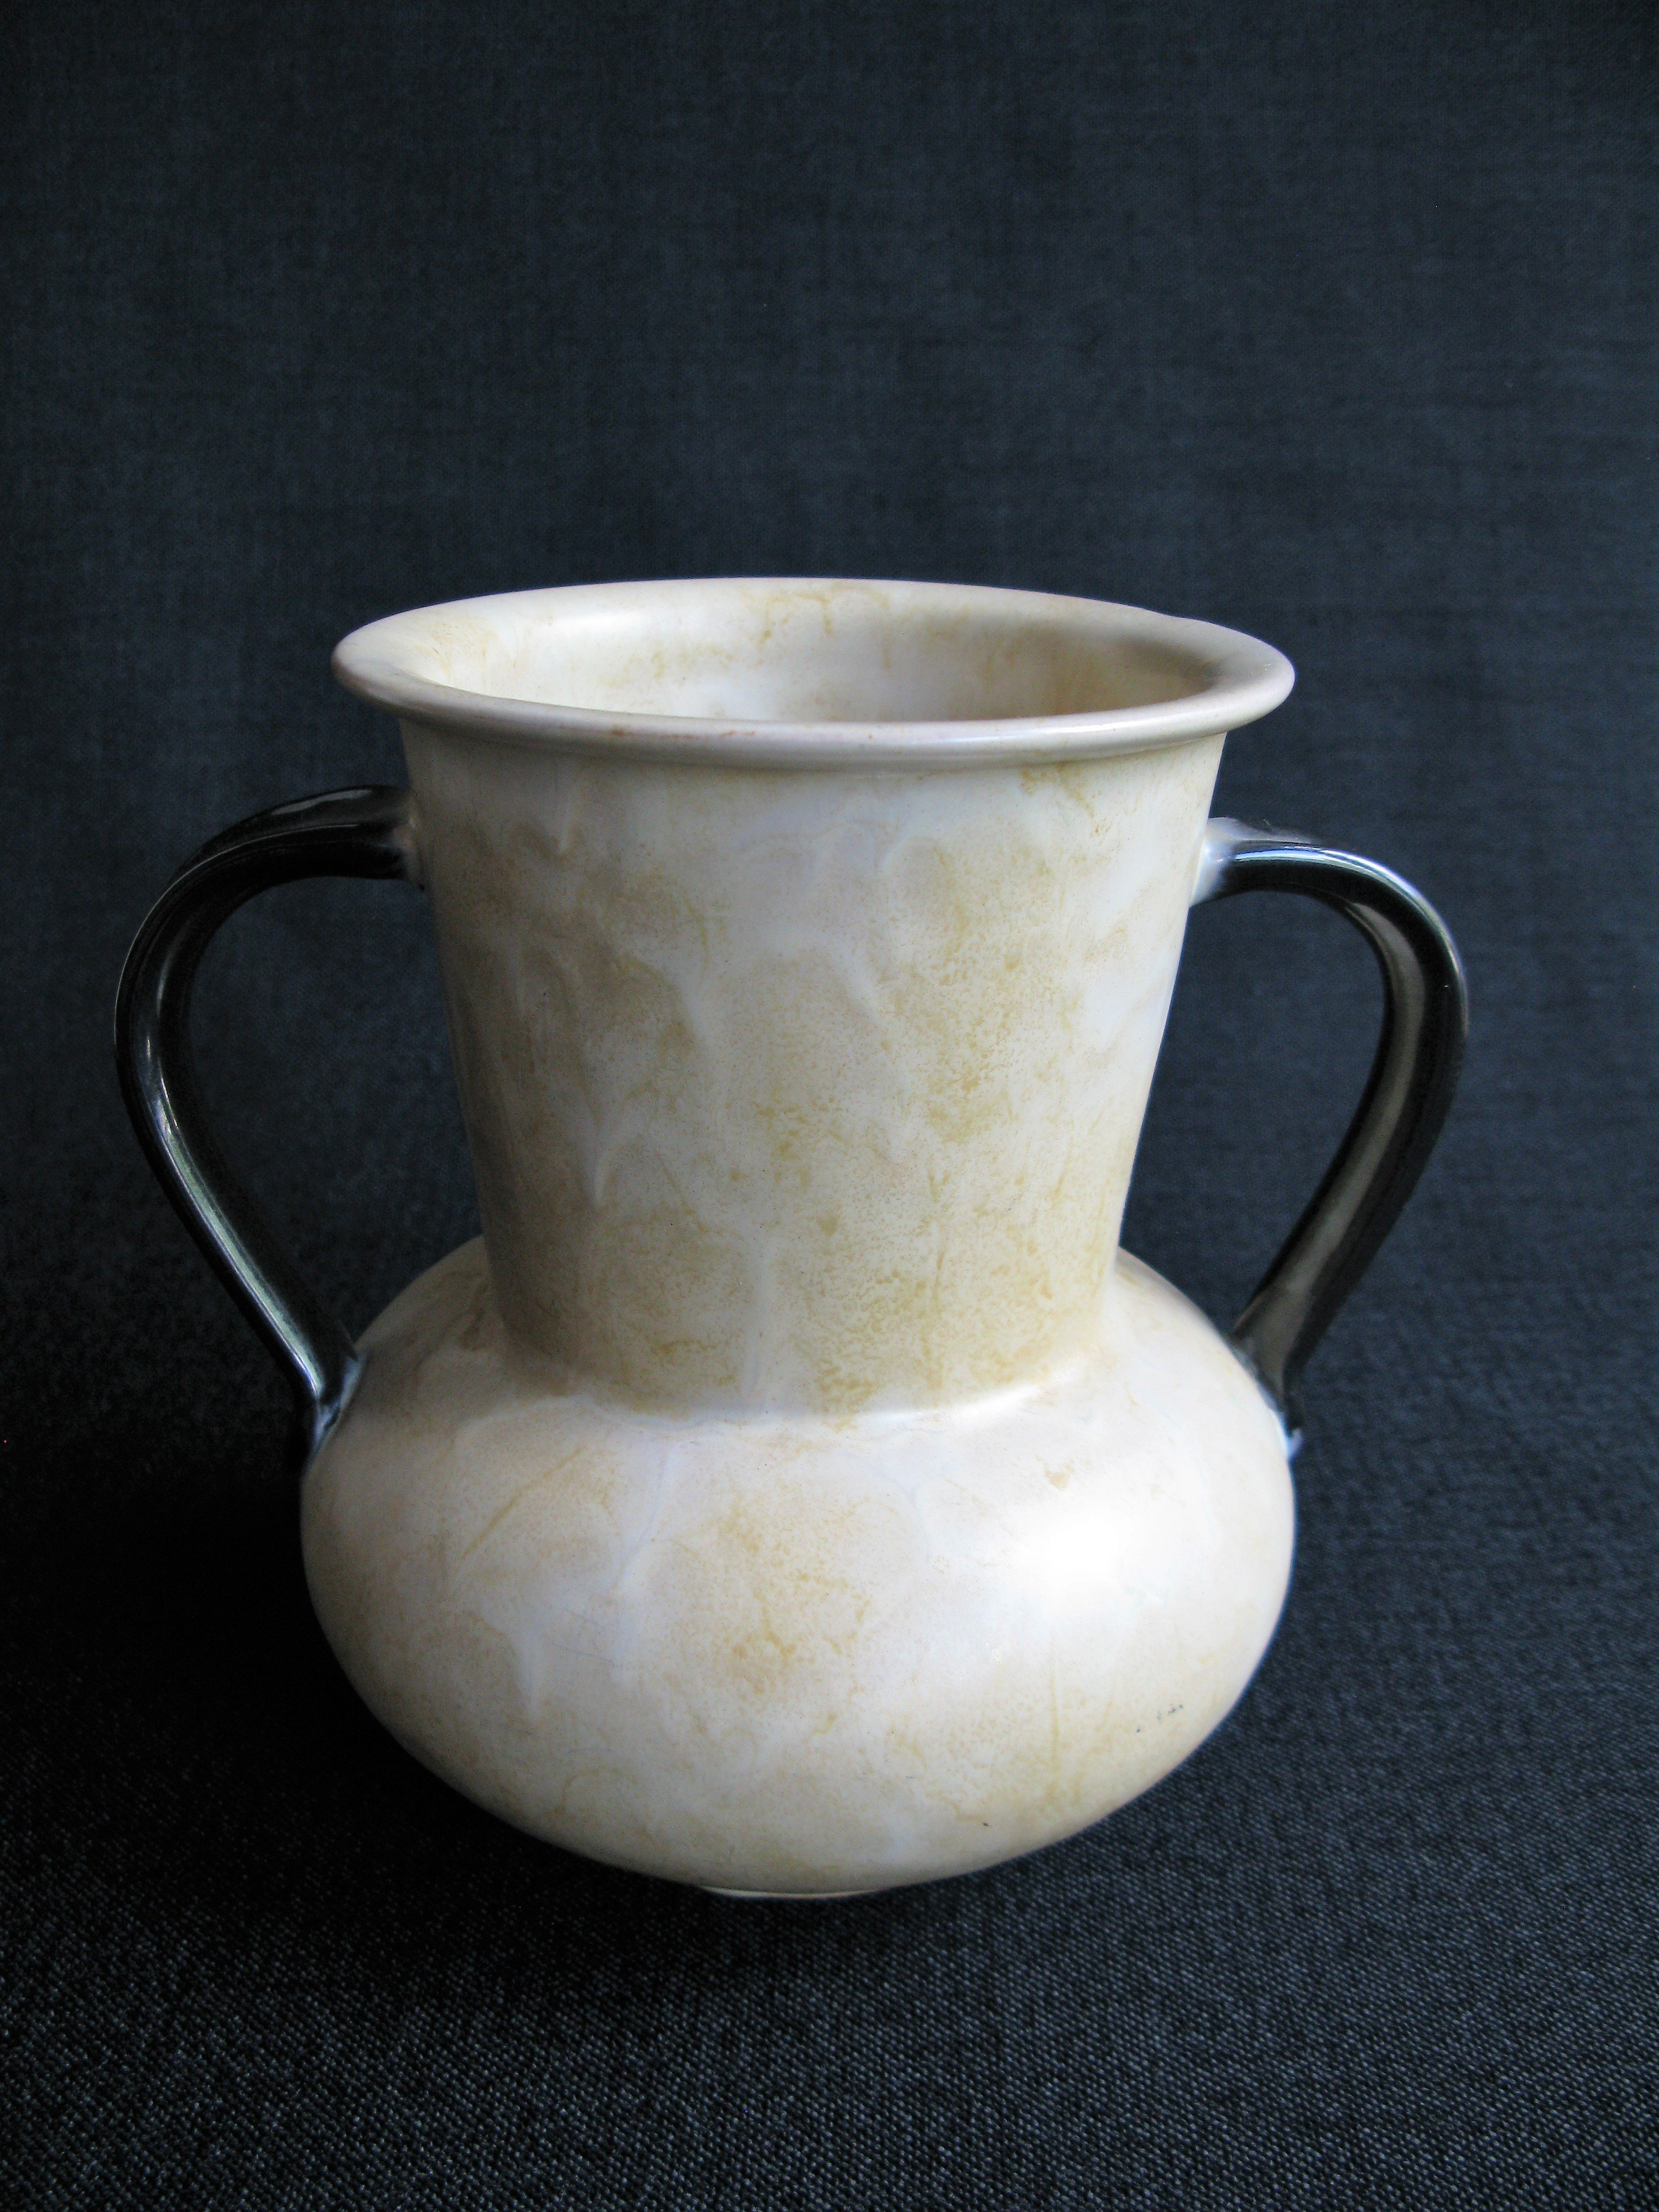 yellowish/brown vase 3142/2